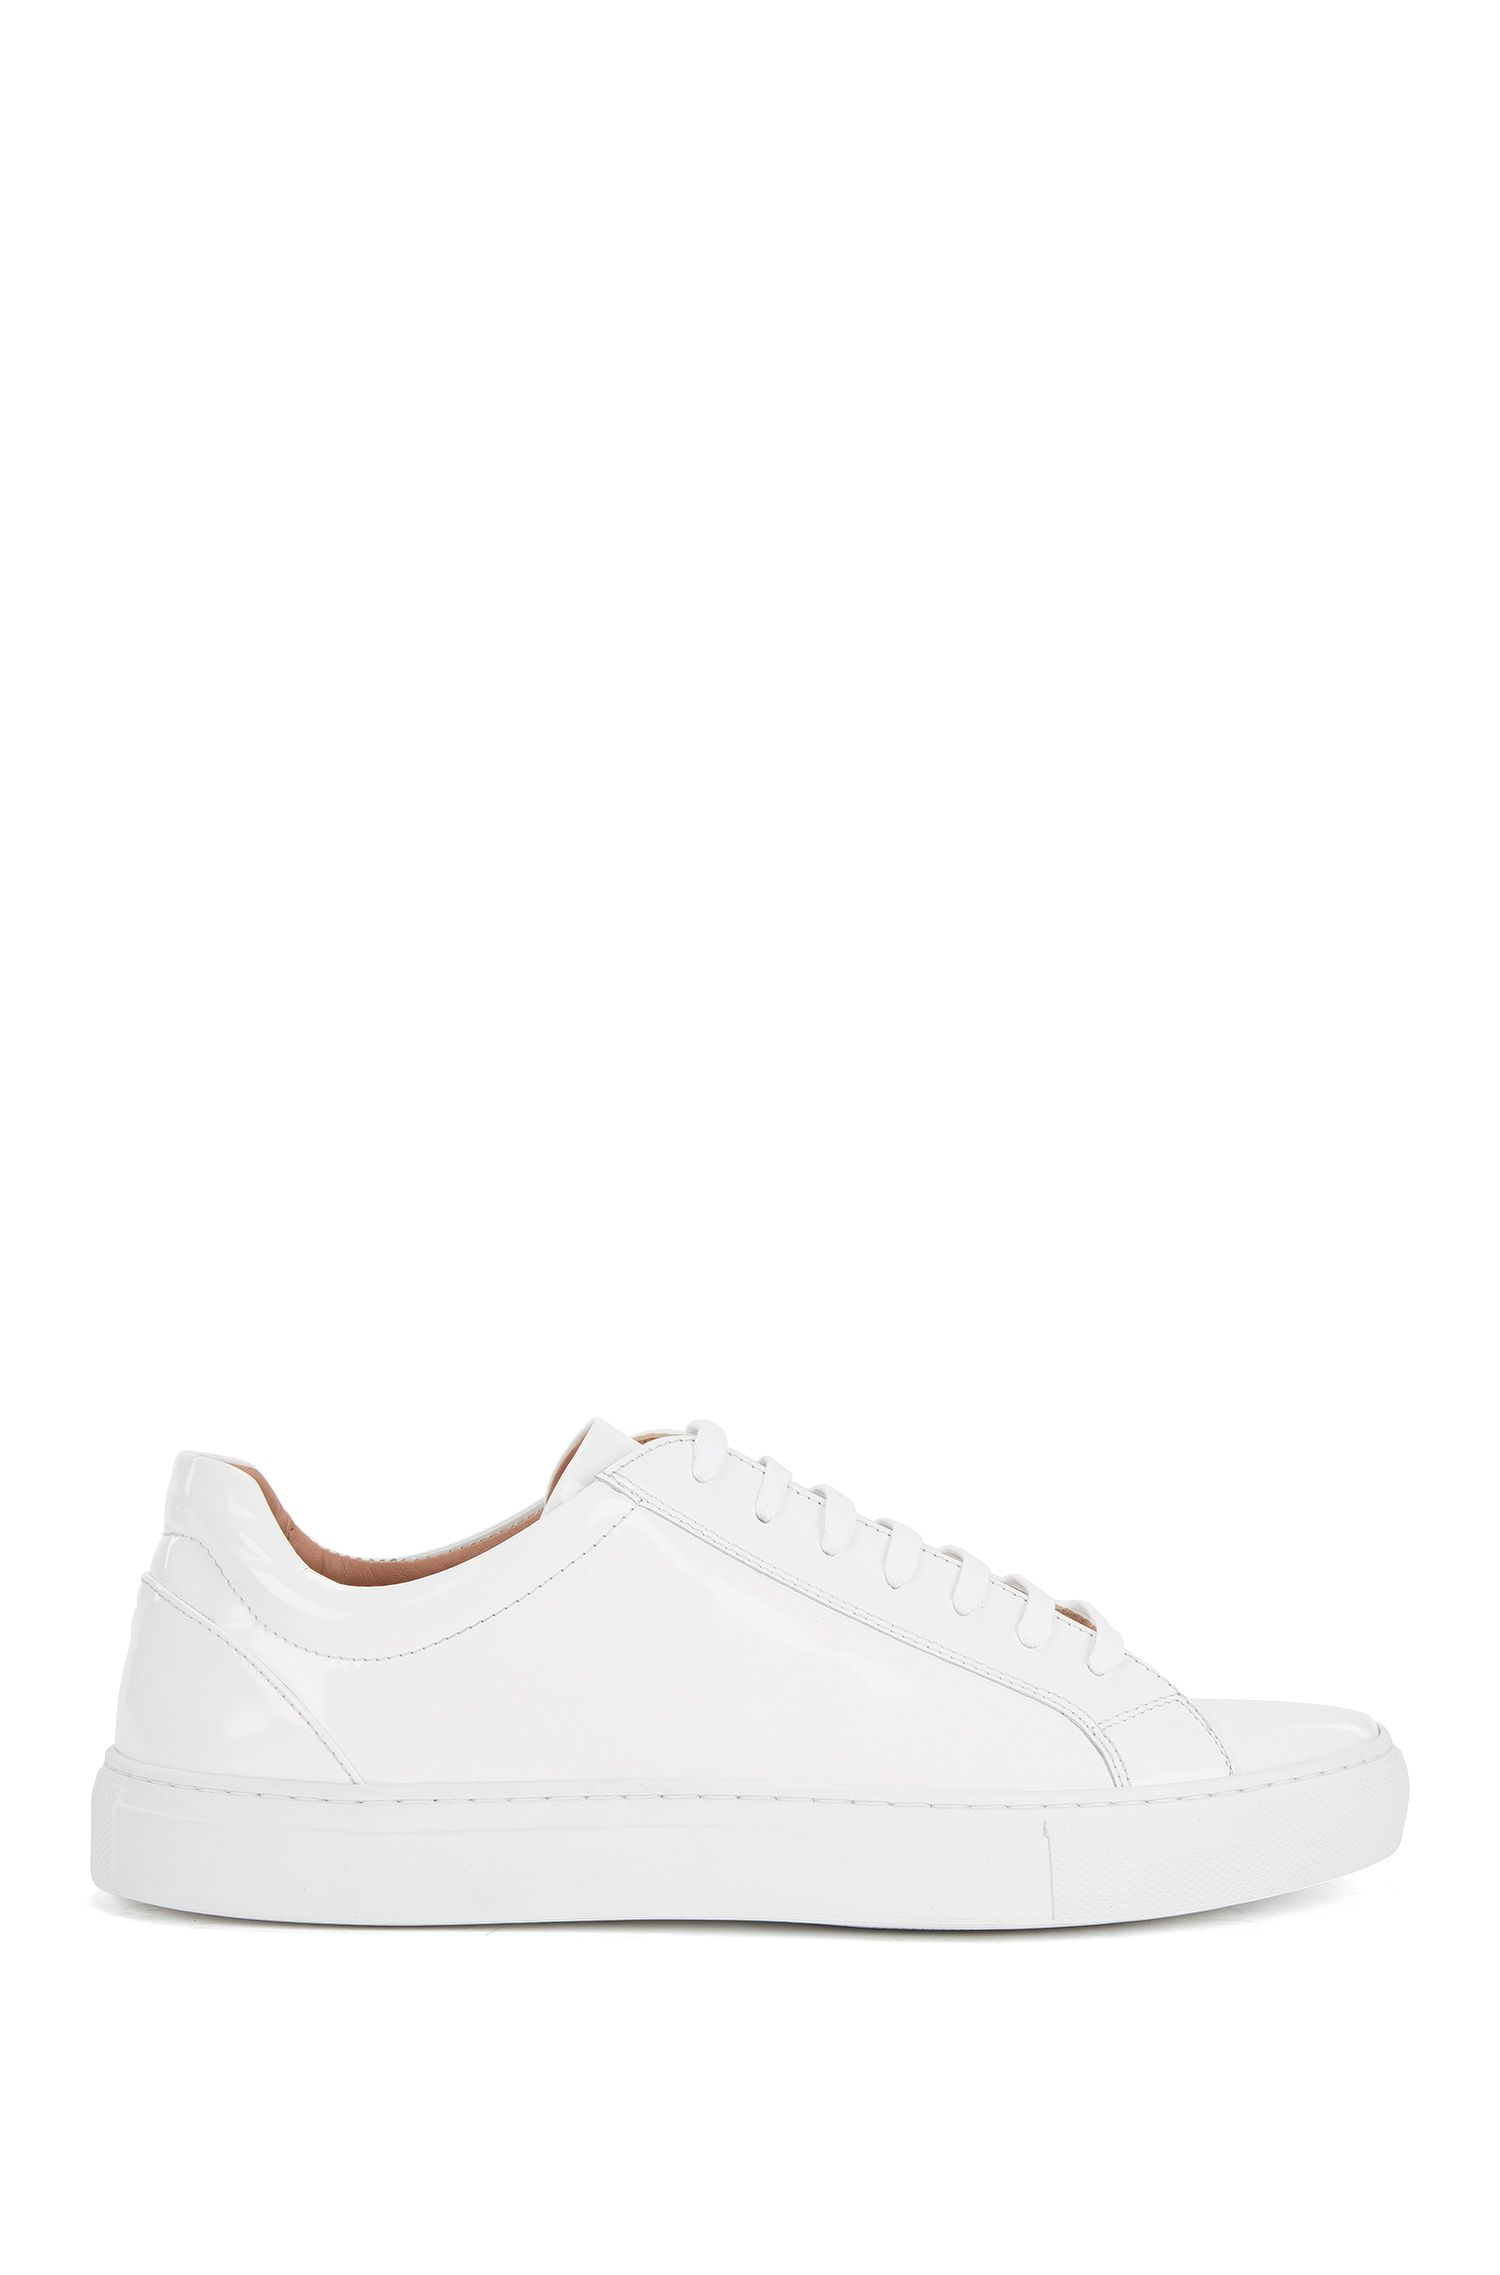 Sneakers low-top in pelle spazzolata